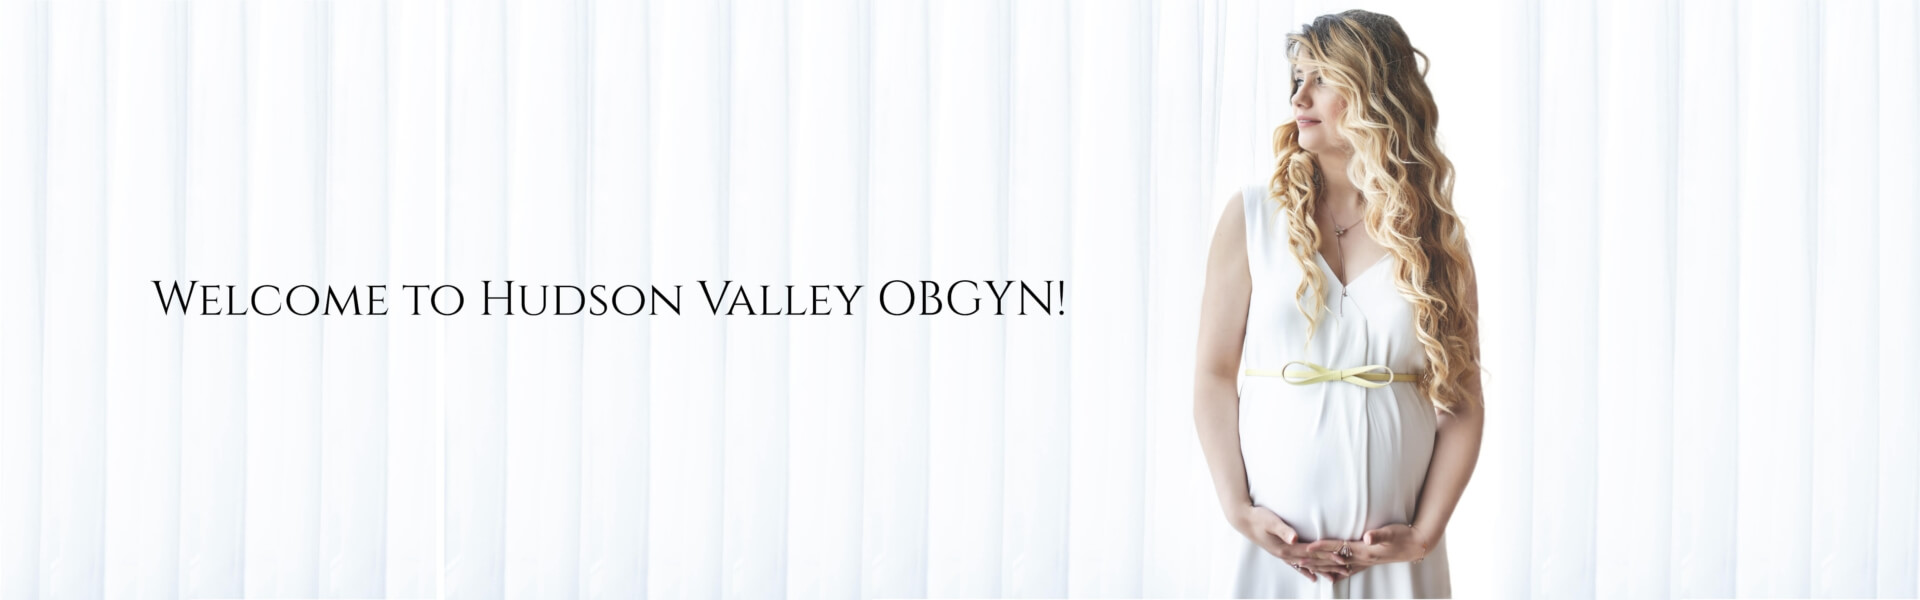 Welcome to Hudson Valley OBGYN!